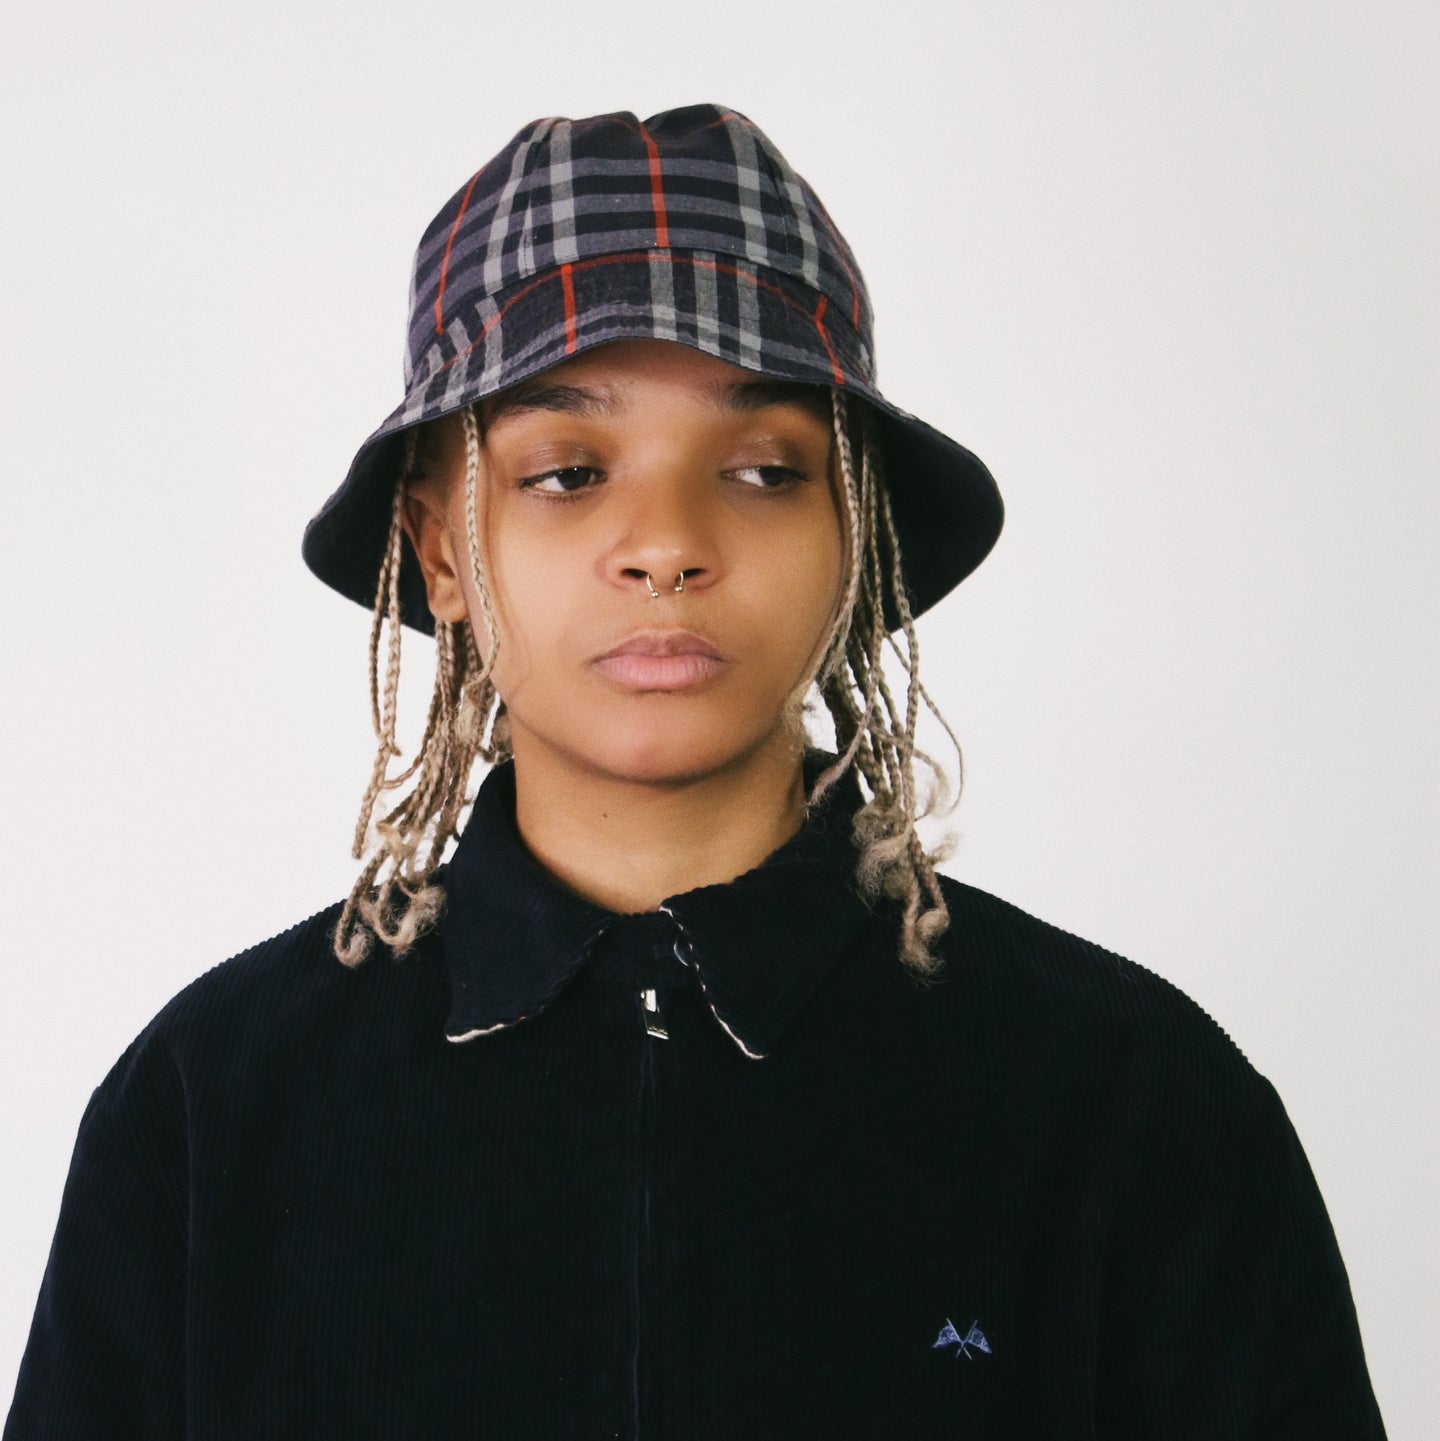 BURBERRY NOVA CHECK REVERSIBLE BUCKET HAT-BASEMENT SIX